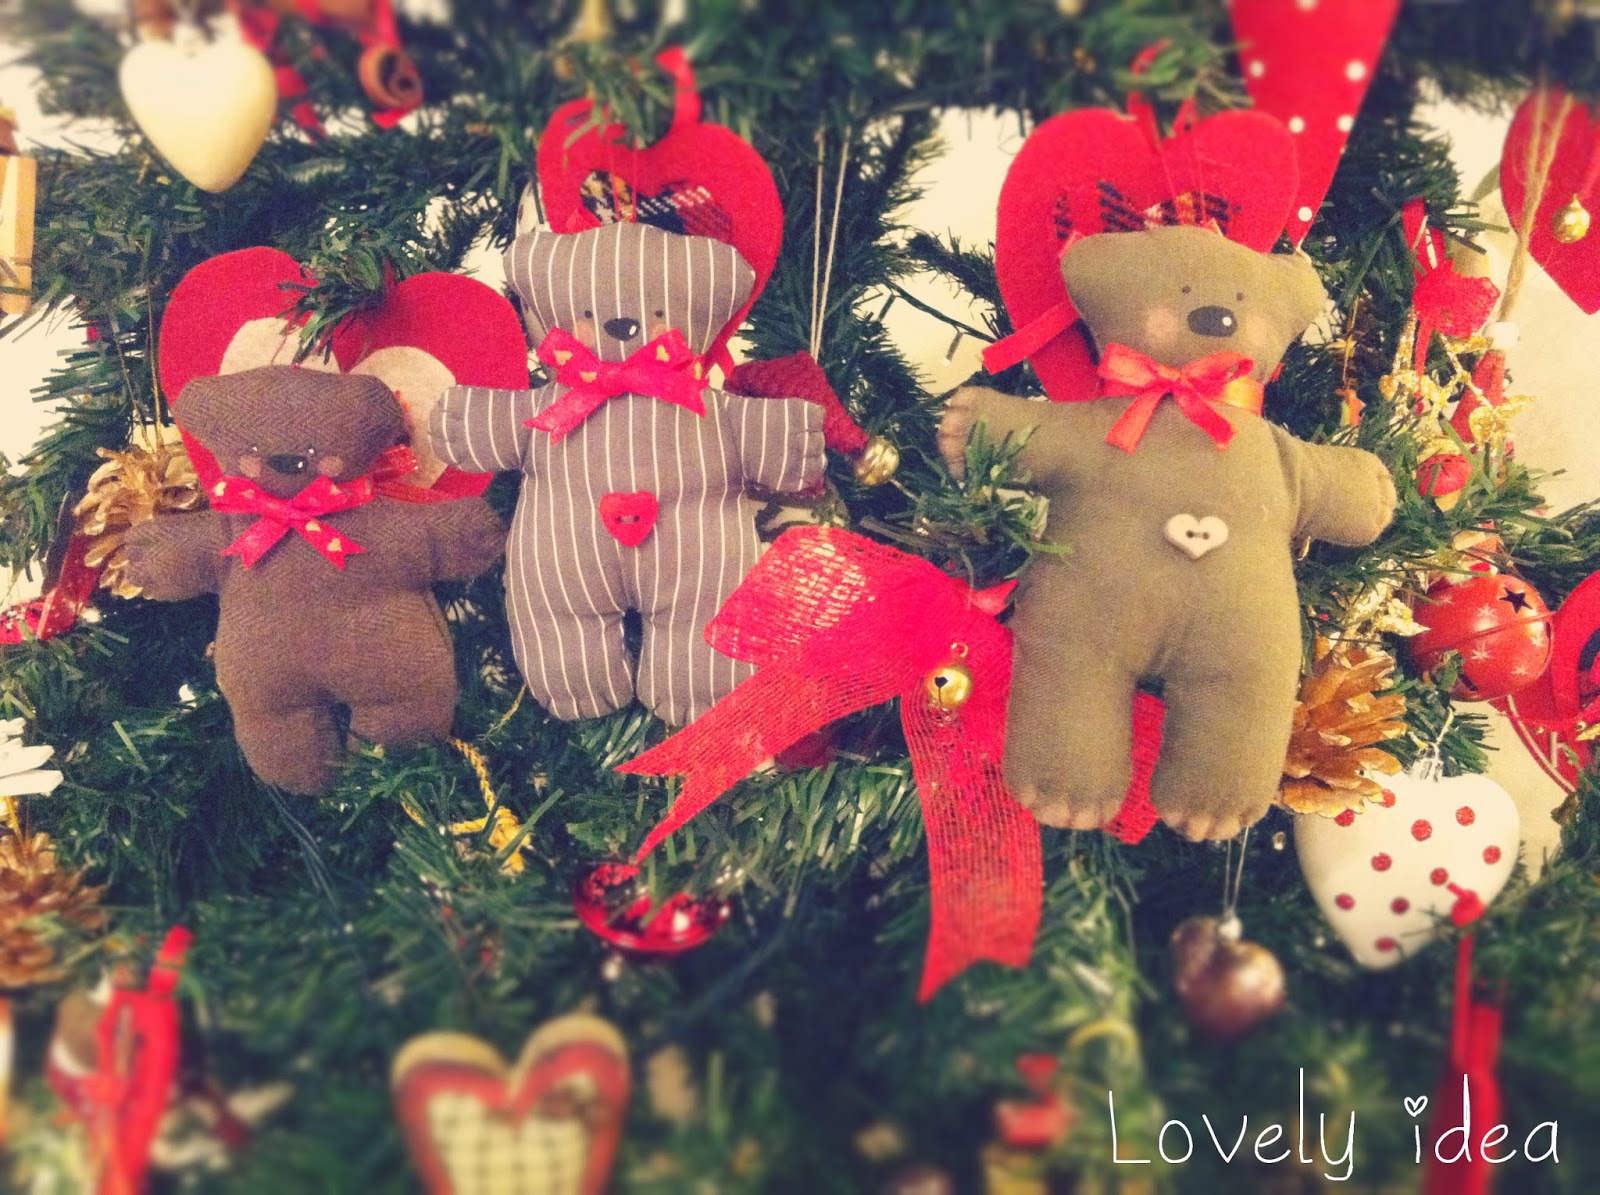 http://nicole-lovelyidea.blogspot.it/2014/12/christmas-teddy-bears.html